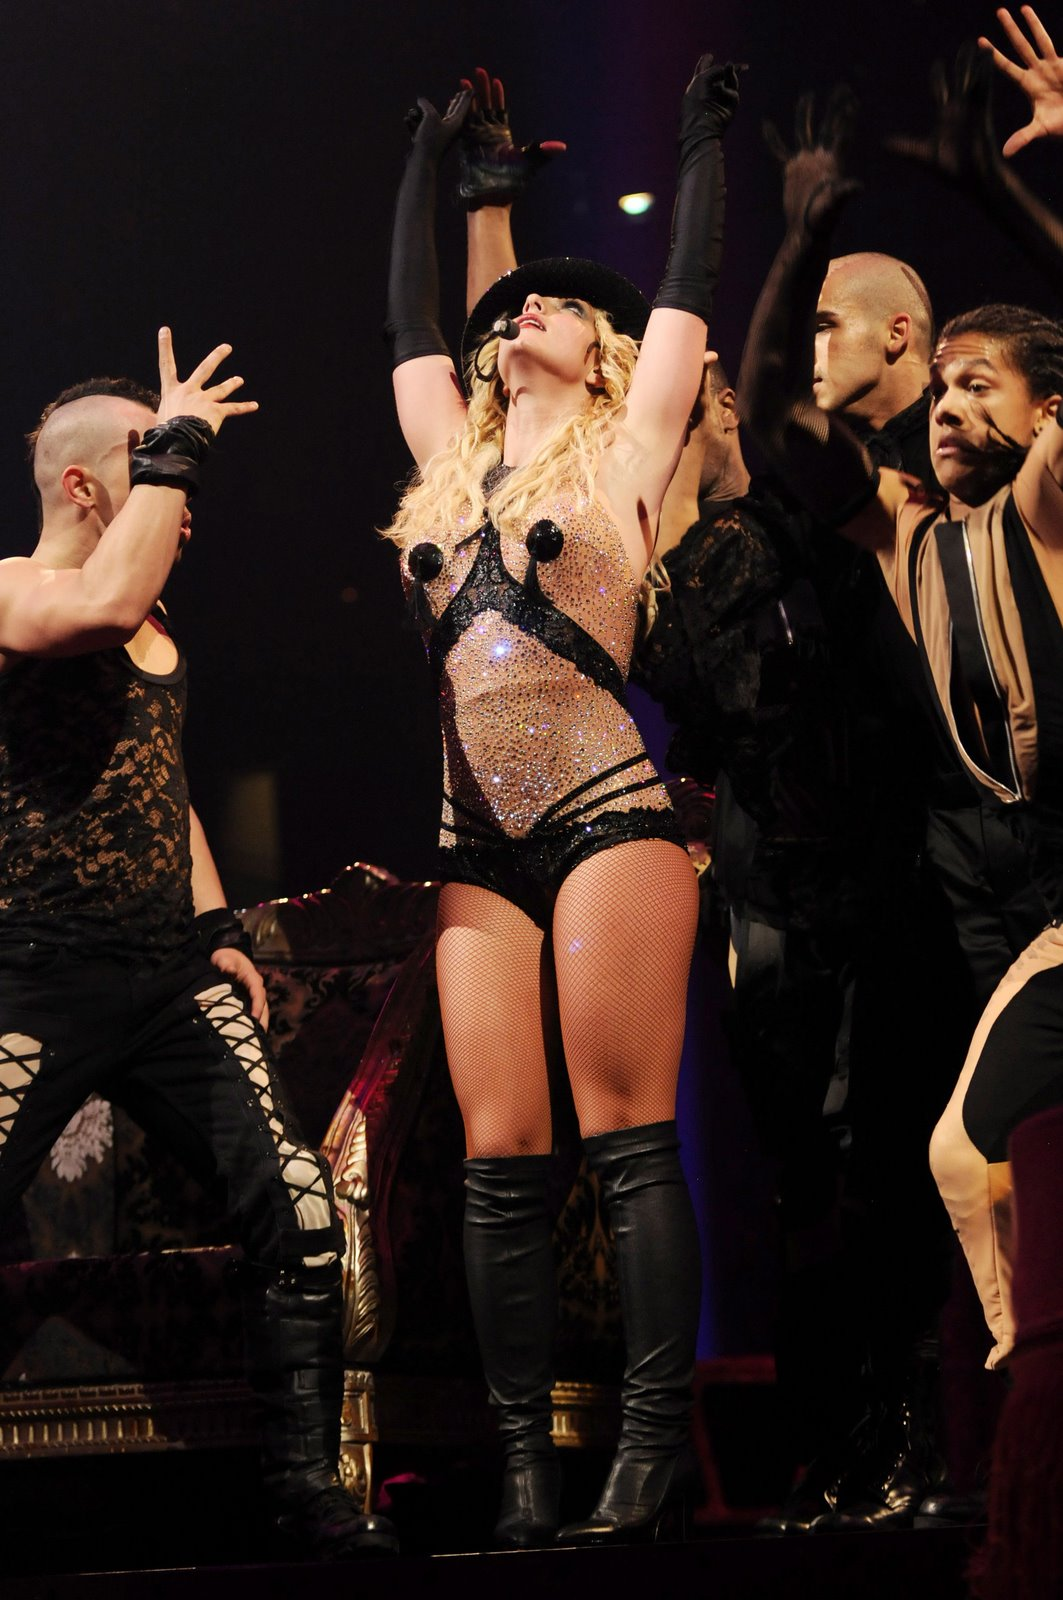 [85239_babayaga_Britney_Spears_The_Circus_Starring_Britney_Spears_Performance_03-03-2009_118_123_213lo.jpg]